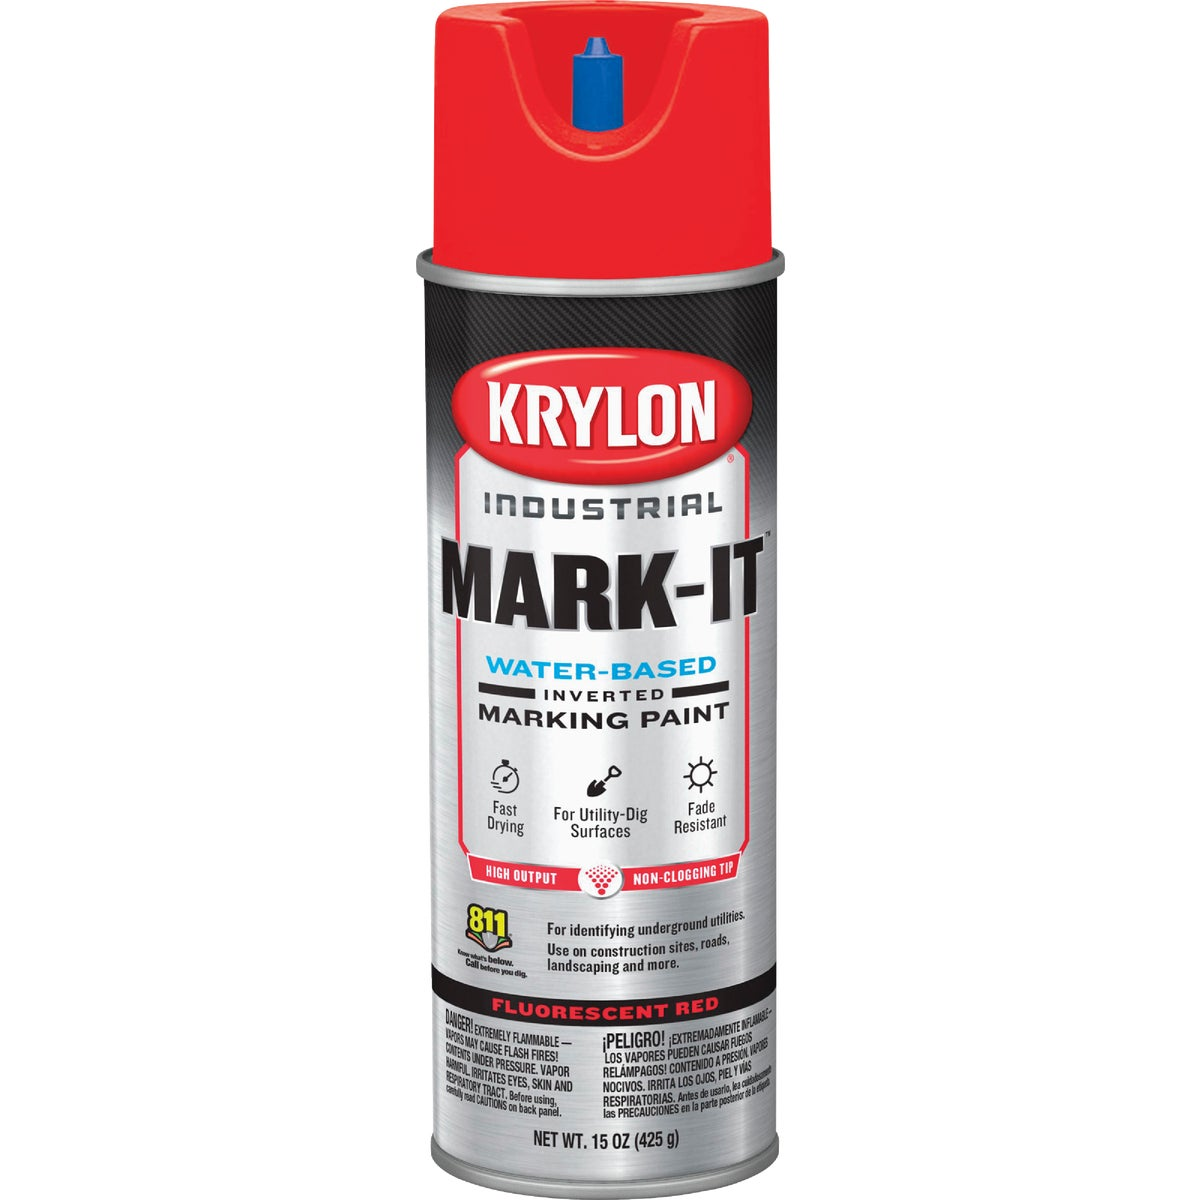 APWA RED MARKING PAINT - 7313 by Krylon/consumer Div